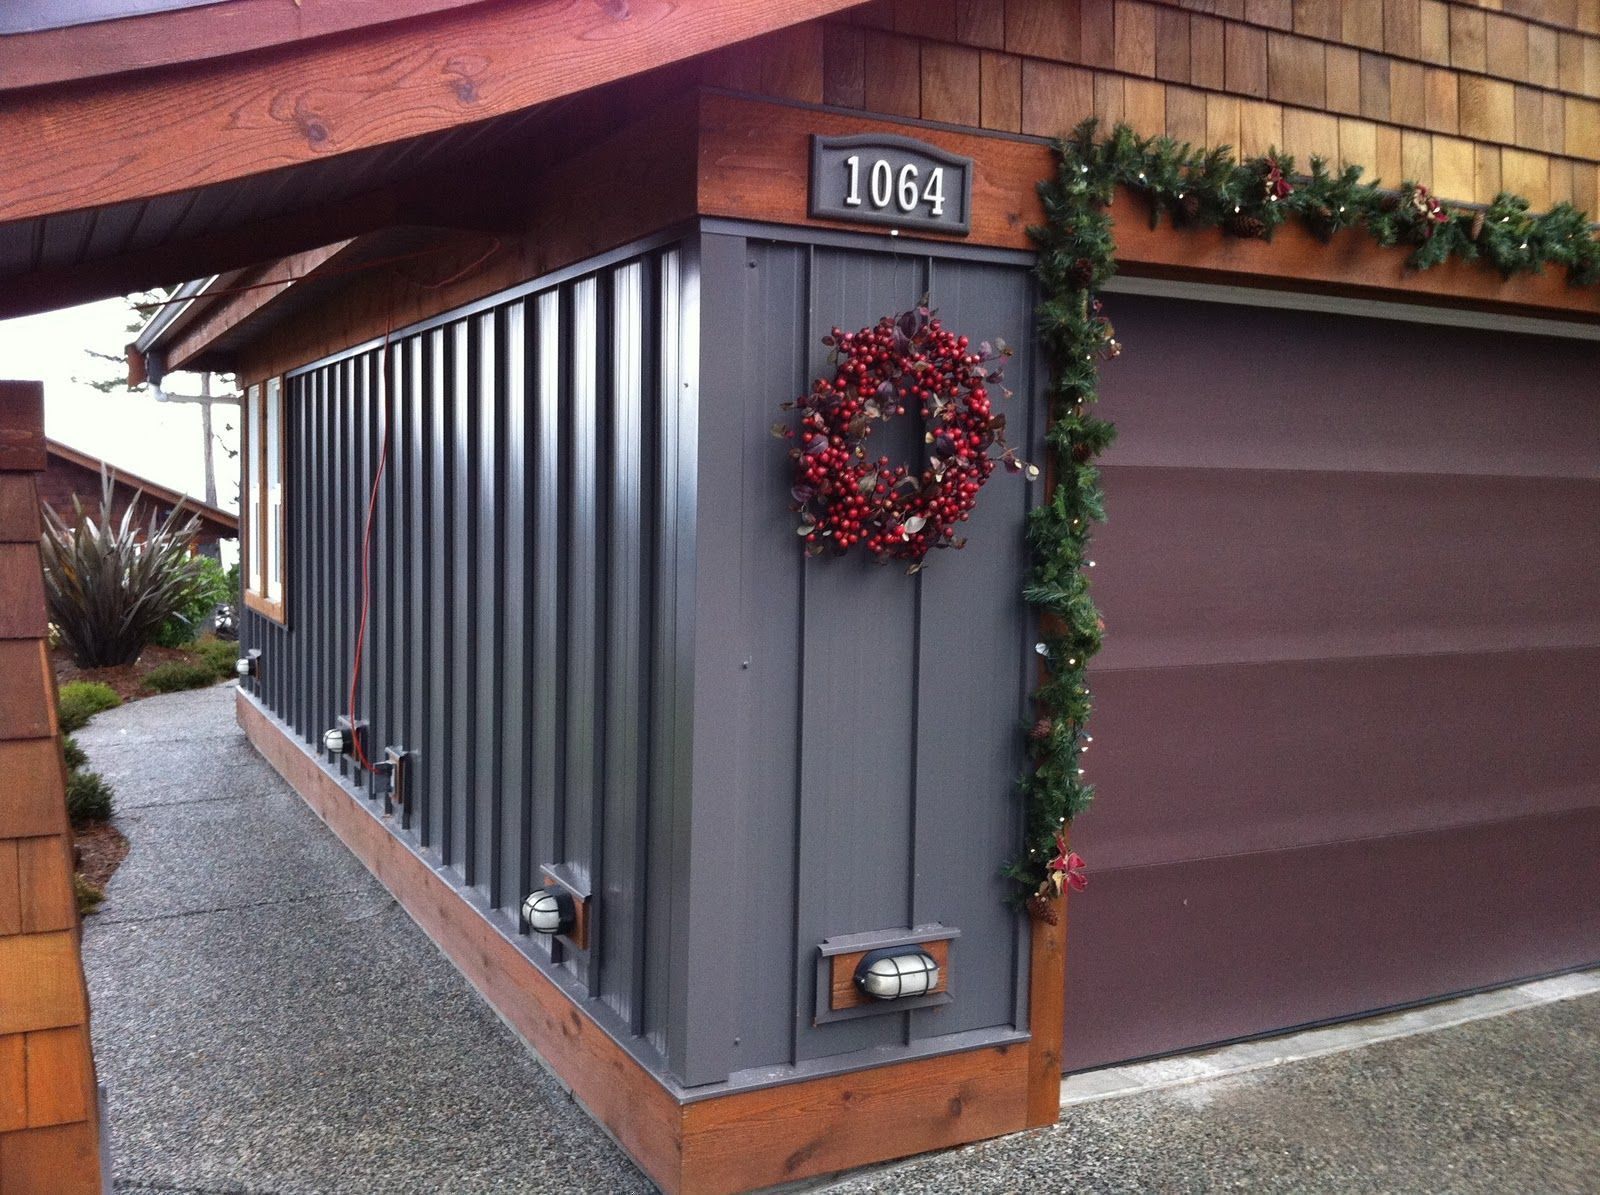 Unusual But Beautiful Combination Of Metal And Wood Shake Siding We Love This Look But Would Replace The Real Metal Siding House Metal Siding Metal Buildings